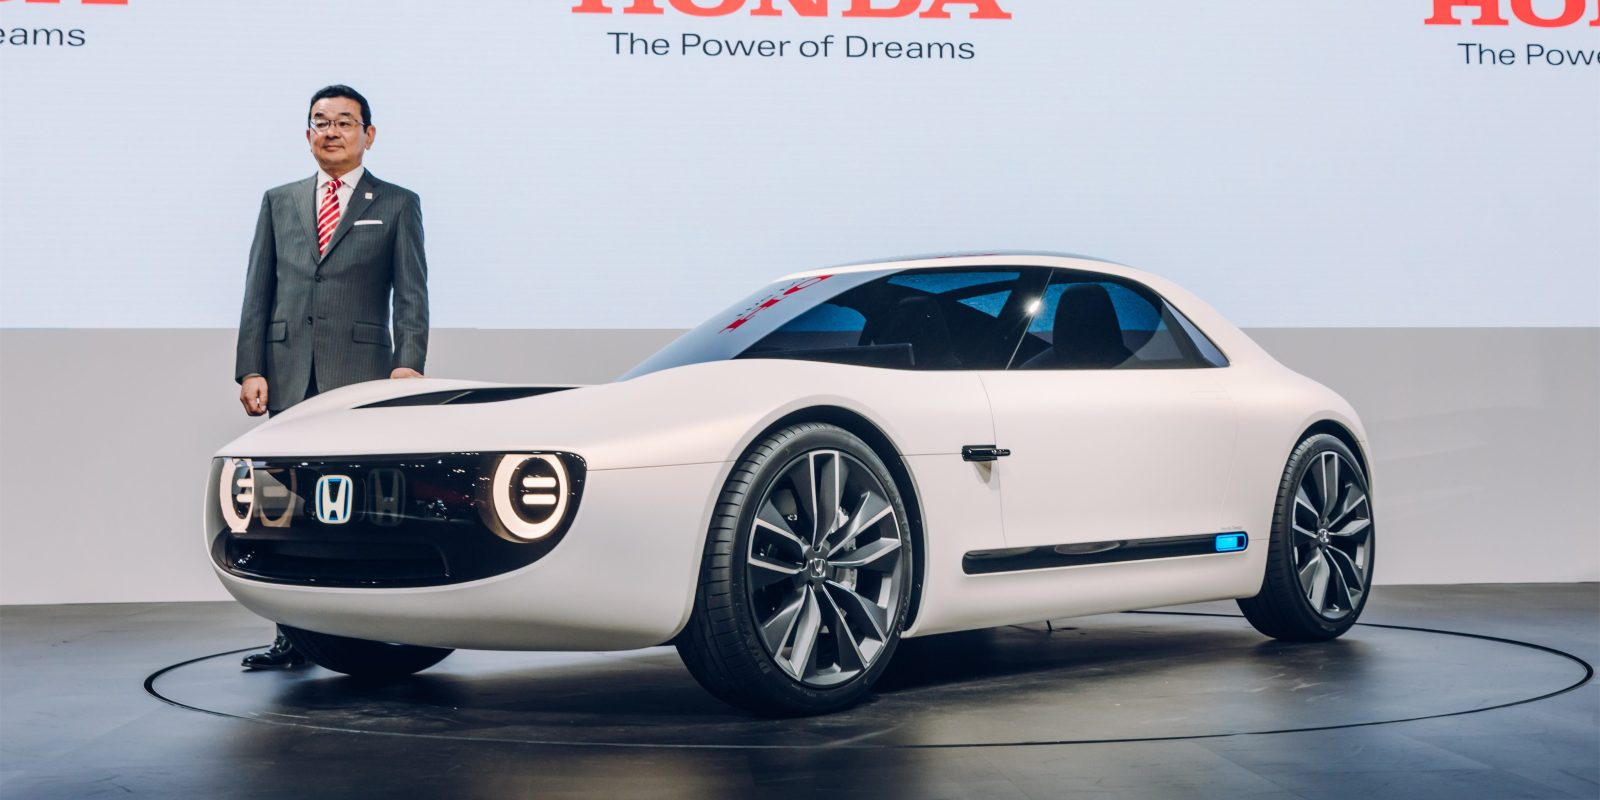 Honda Unveils All Electric Sports Car Concept Based On New Platform